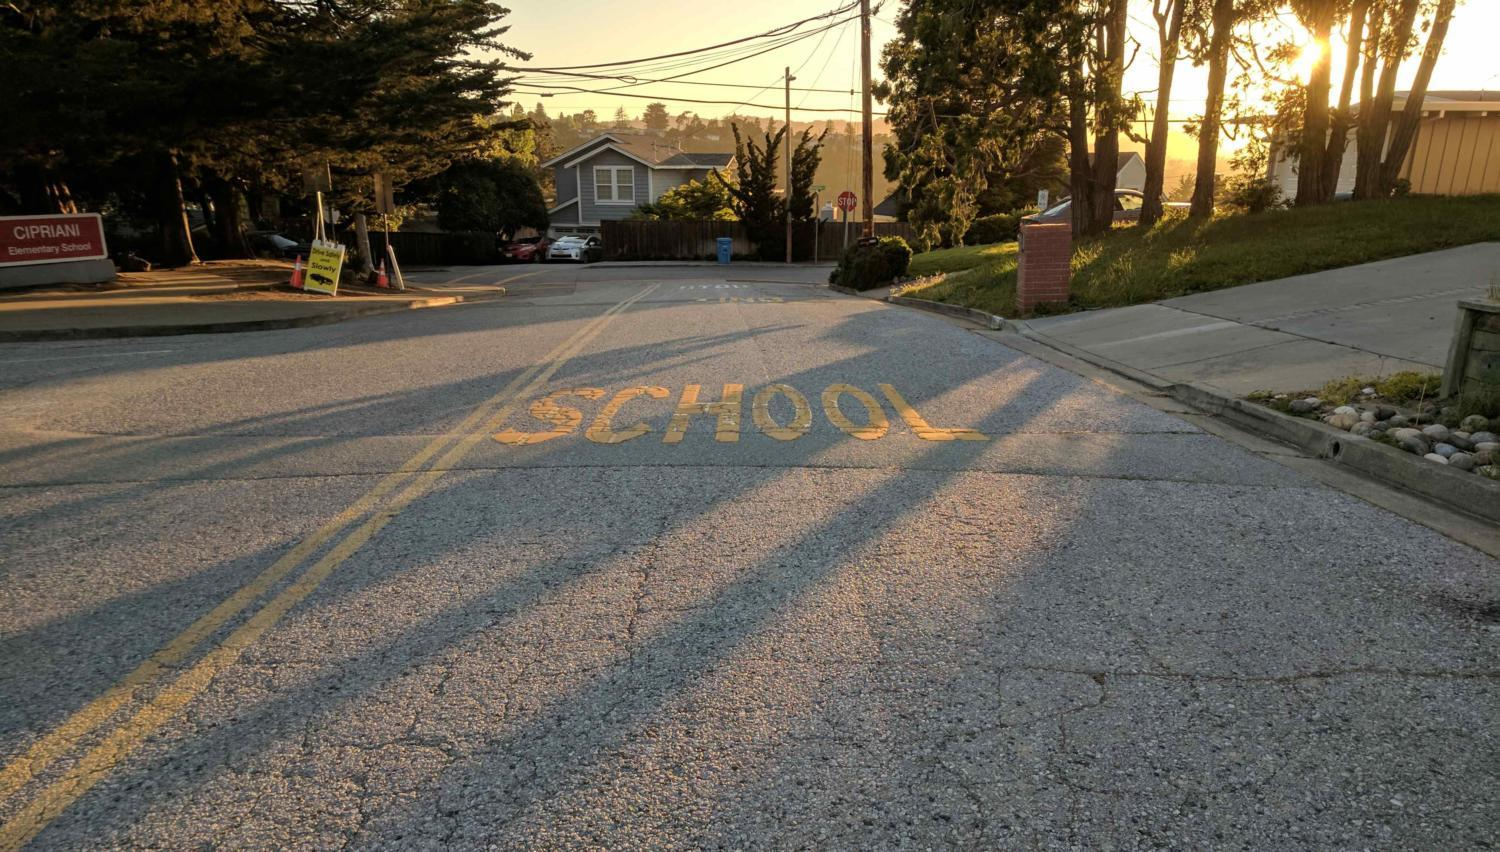 Buena Vista Avenue, home to Cipriani Elementary School, is one of the worst roads in the Bay Area.